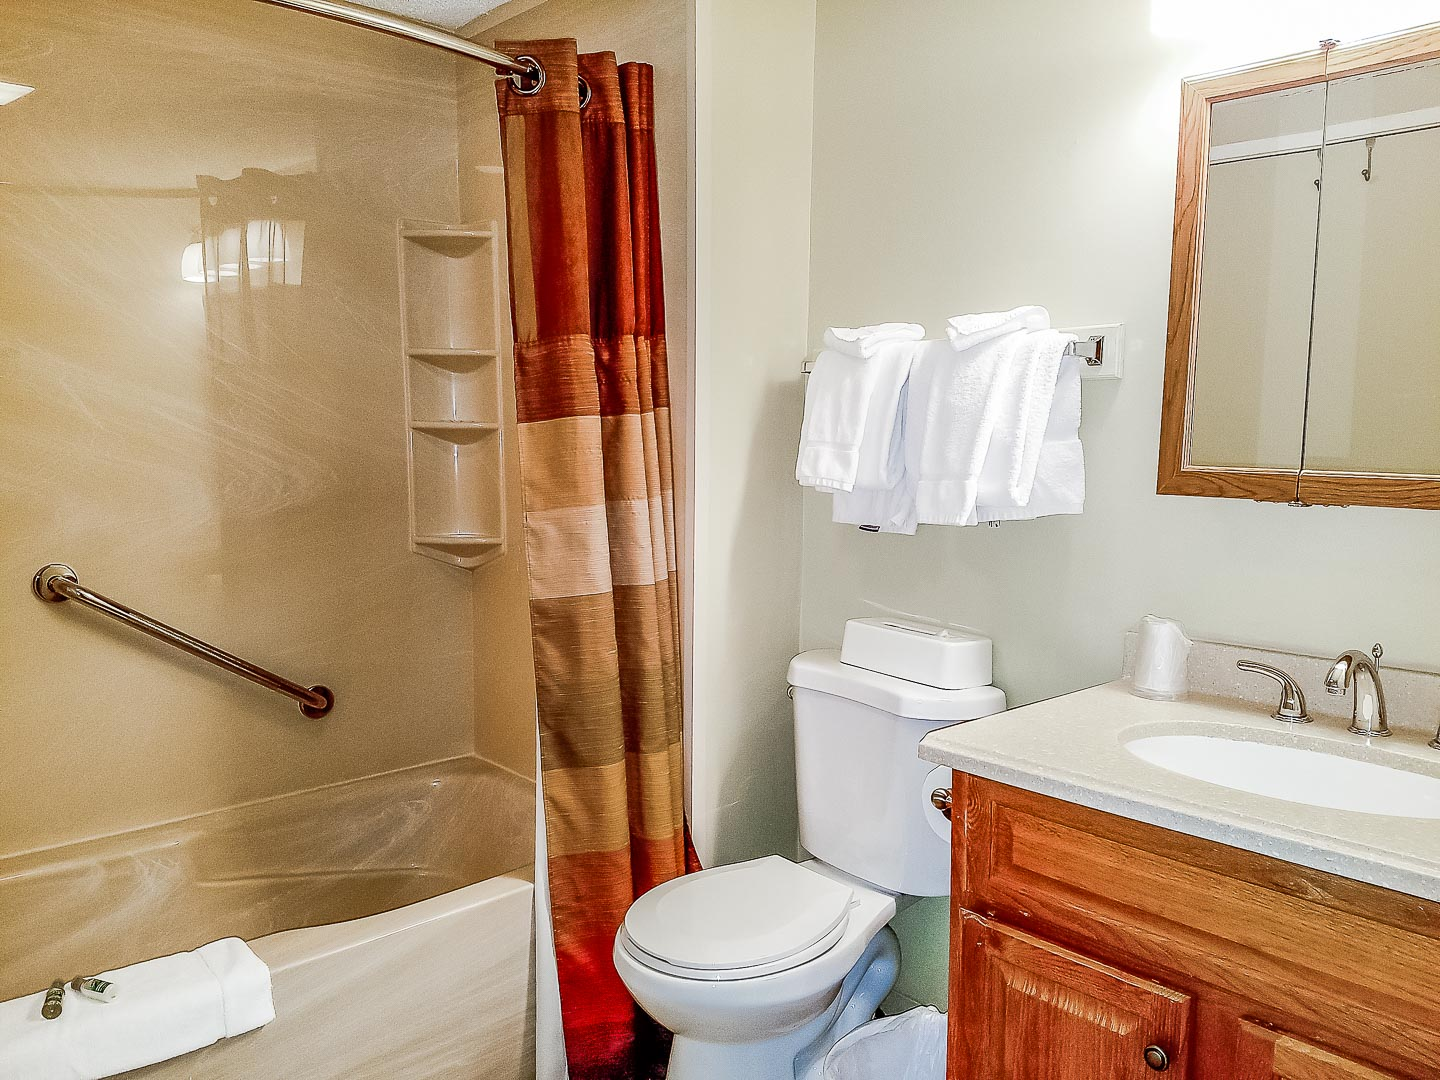 A clean bathroom at VRI's Village of Loon Mountain in New Hampshire.